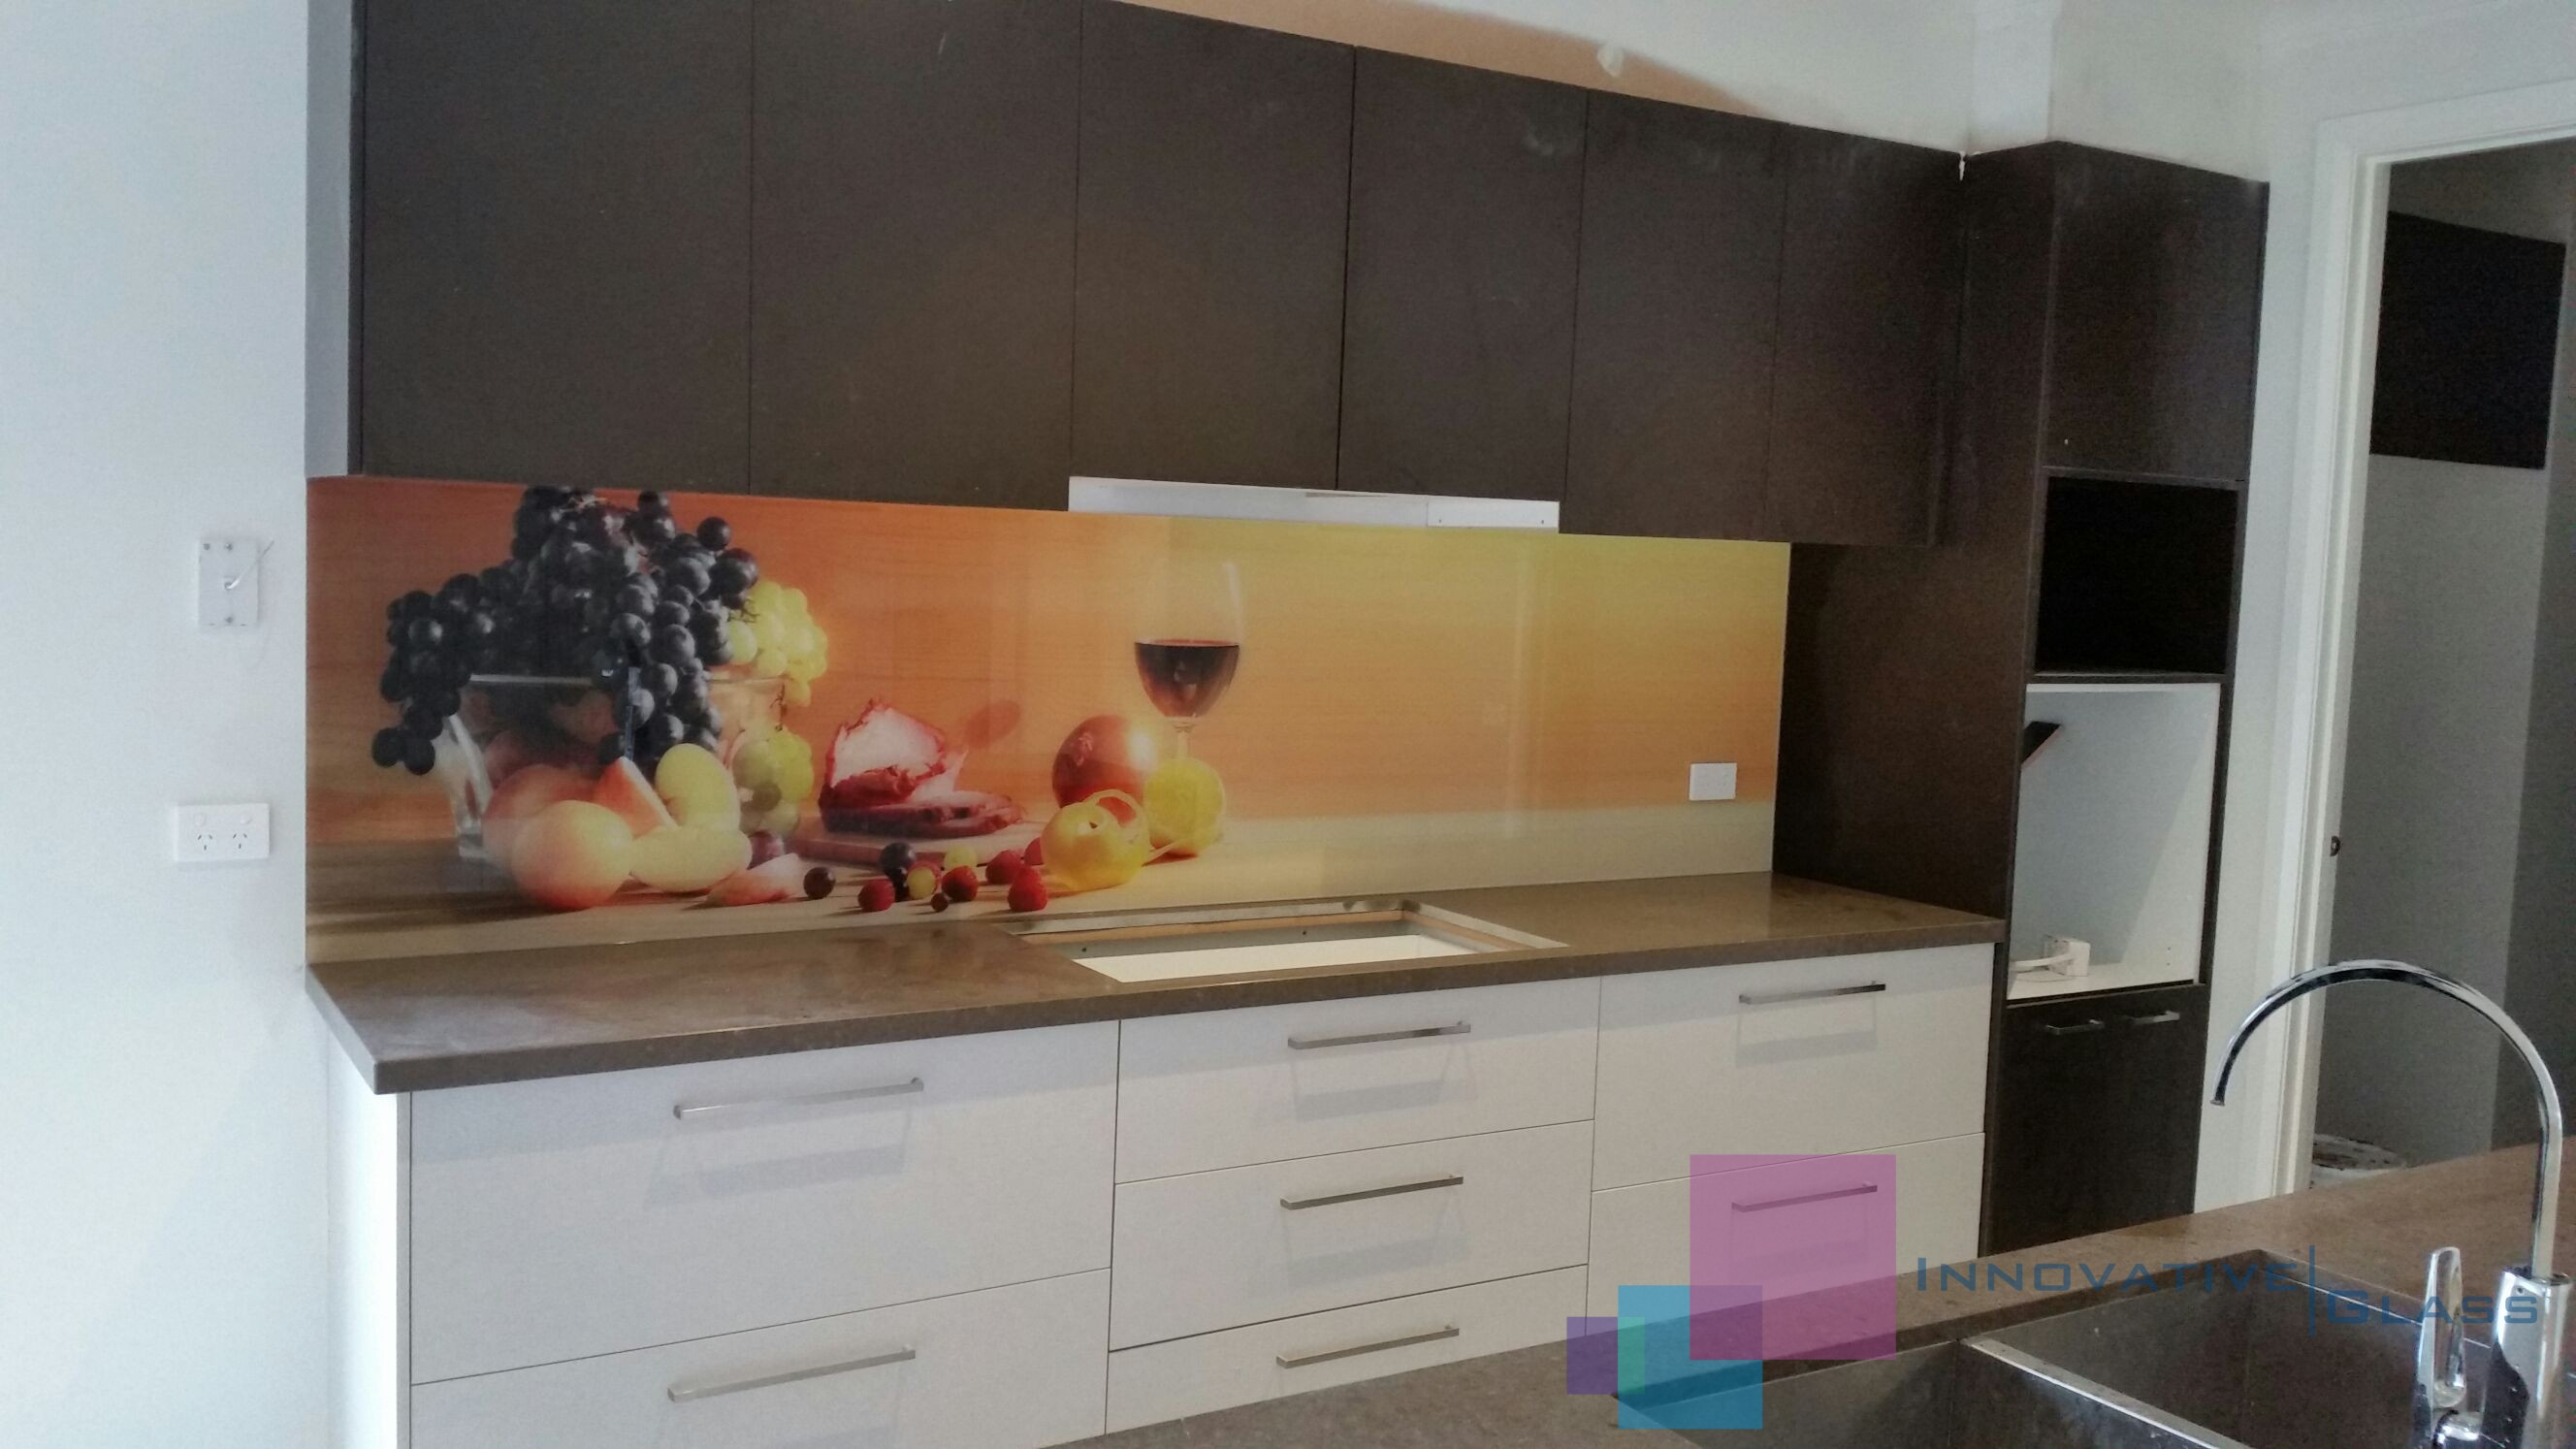 Colourful Photo Printed on Kitchen Splashback